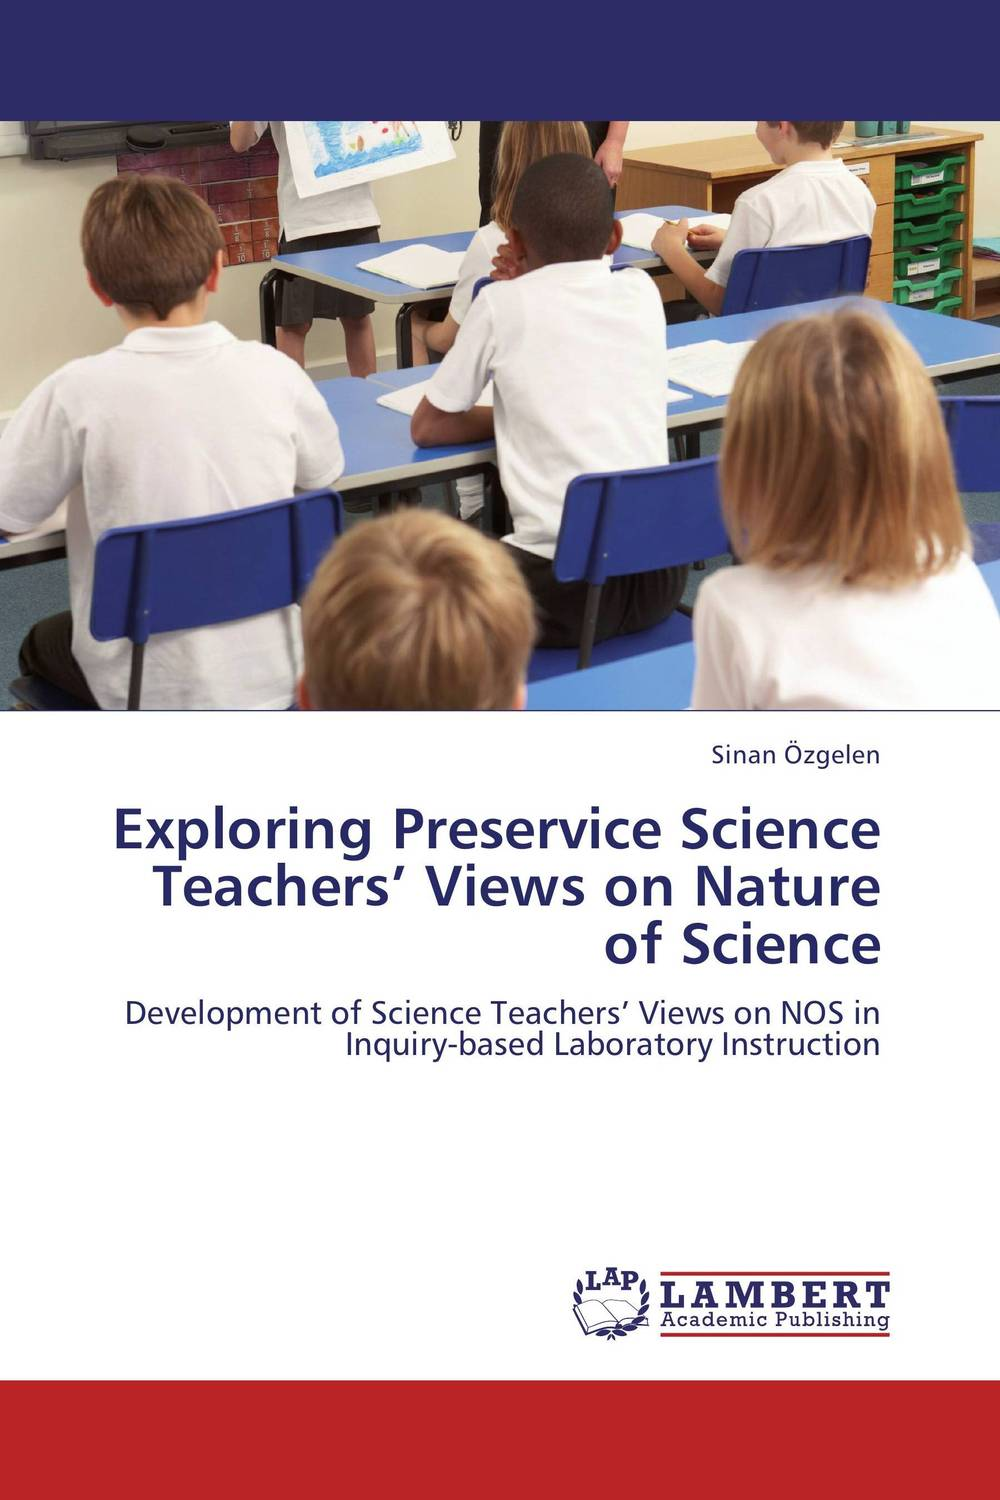 Exploring Preservice Science Teachers' Views on Nature of Science